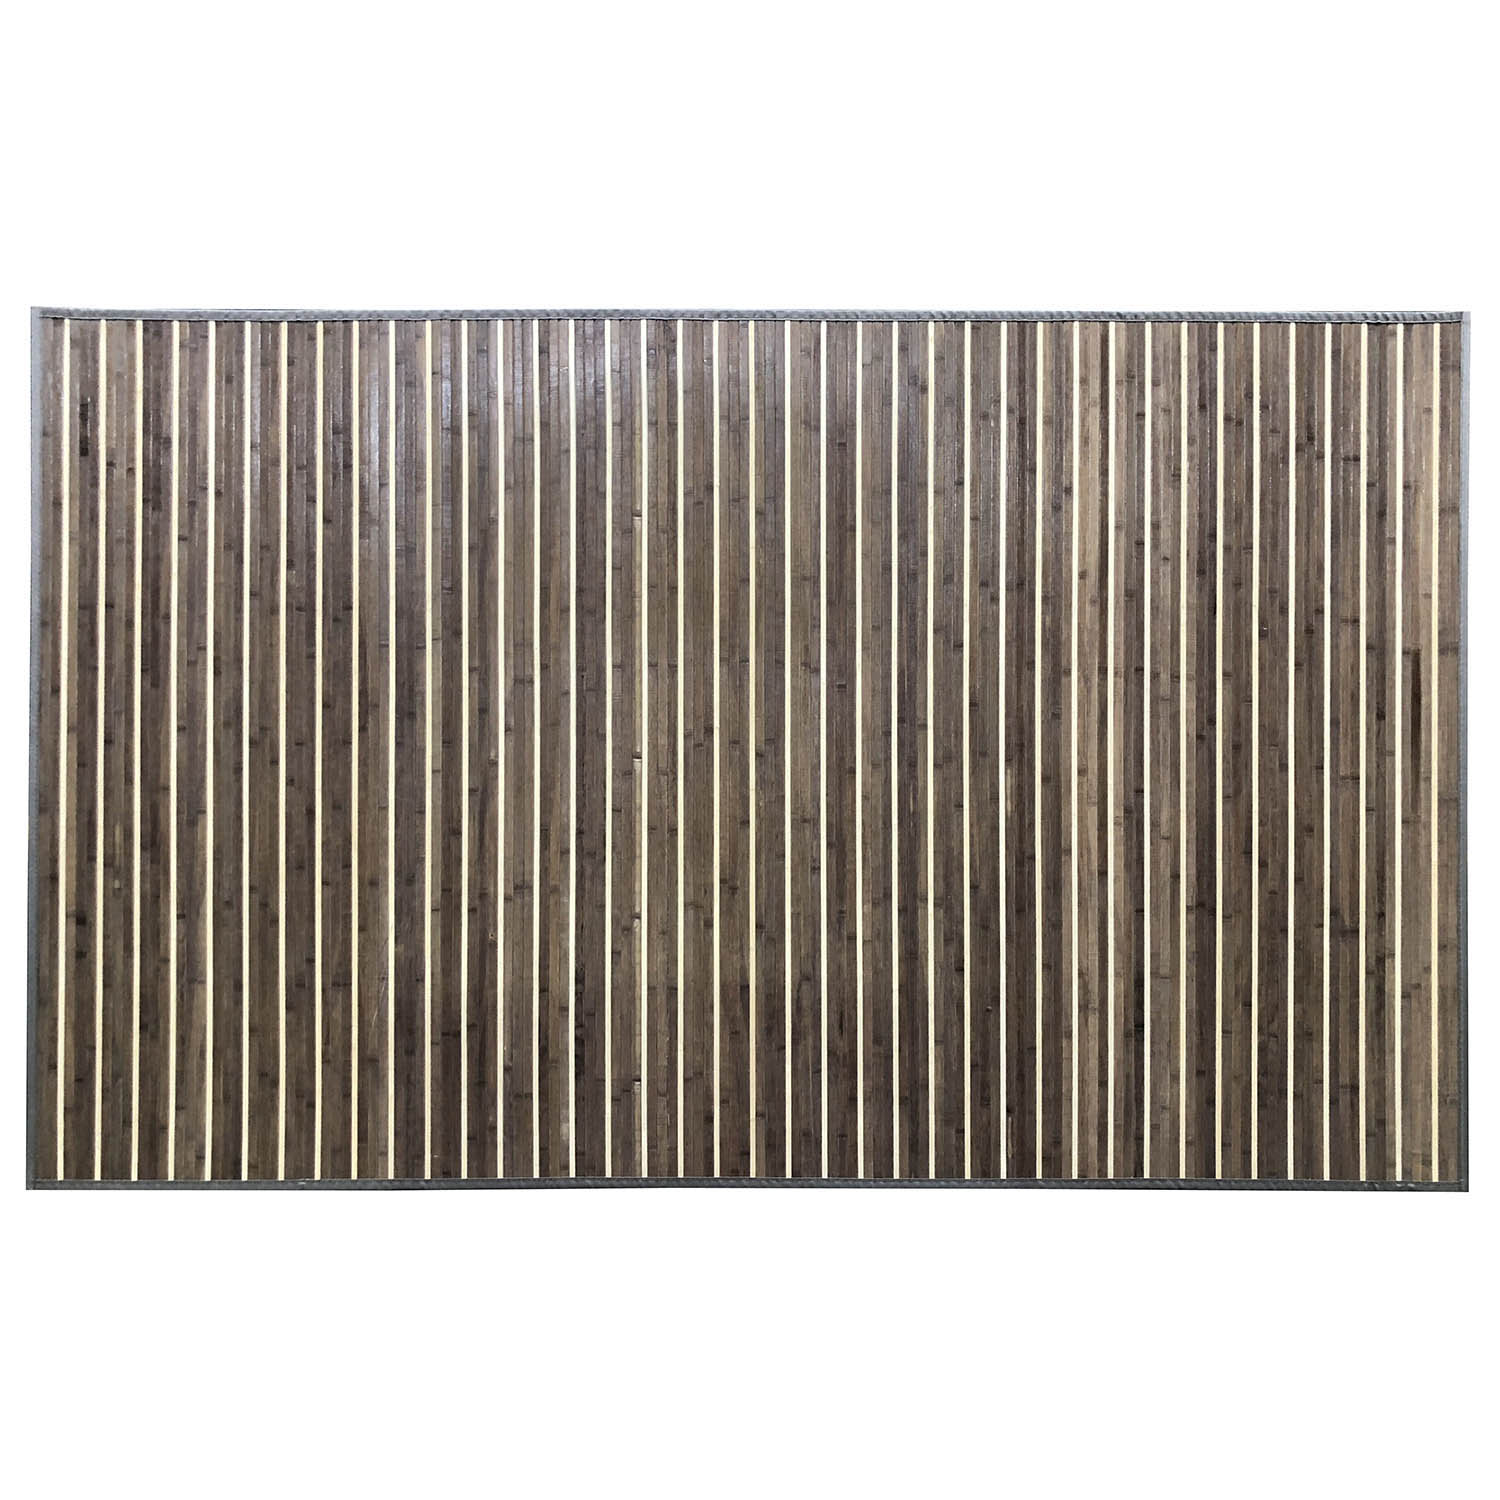 Venice Natural Bamboo 5' X 8' Floor Mat, Rustic Grey Area Rug Indoor Carpet